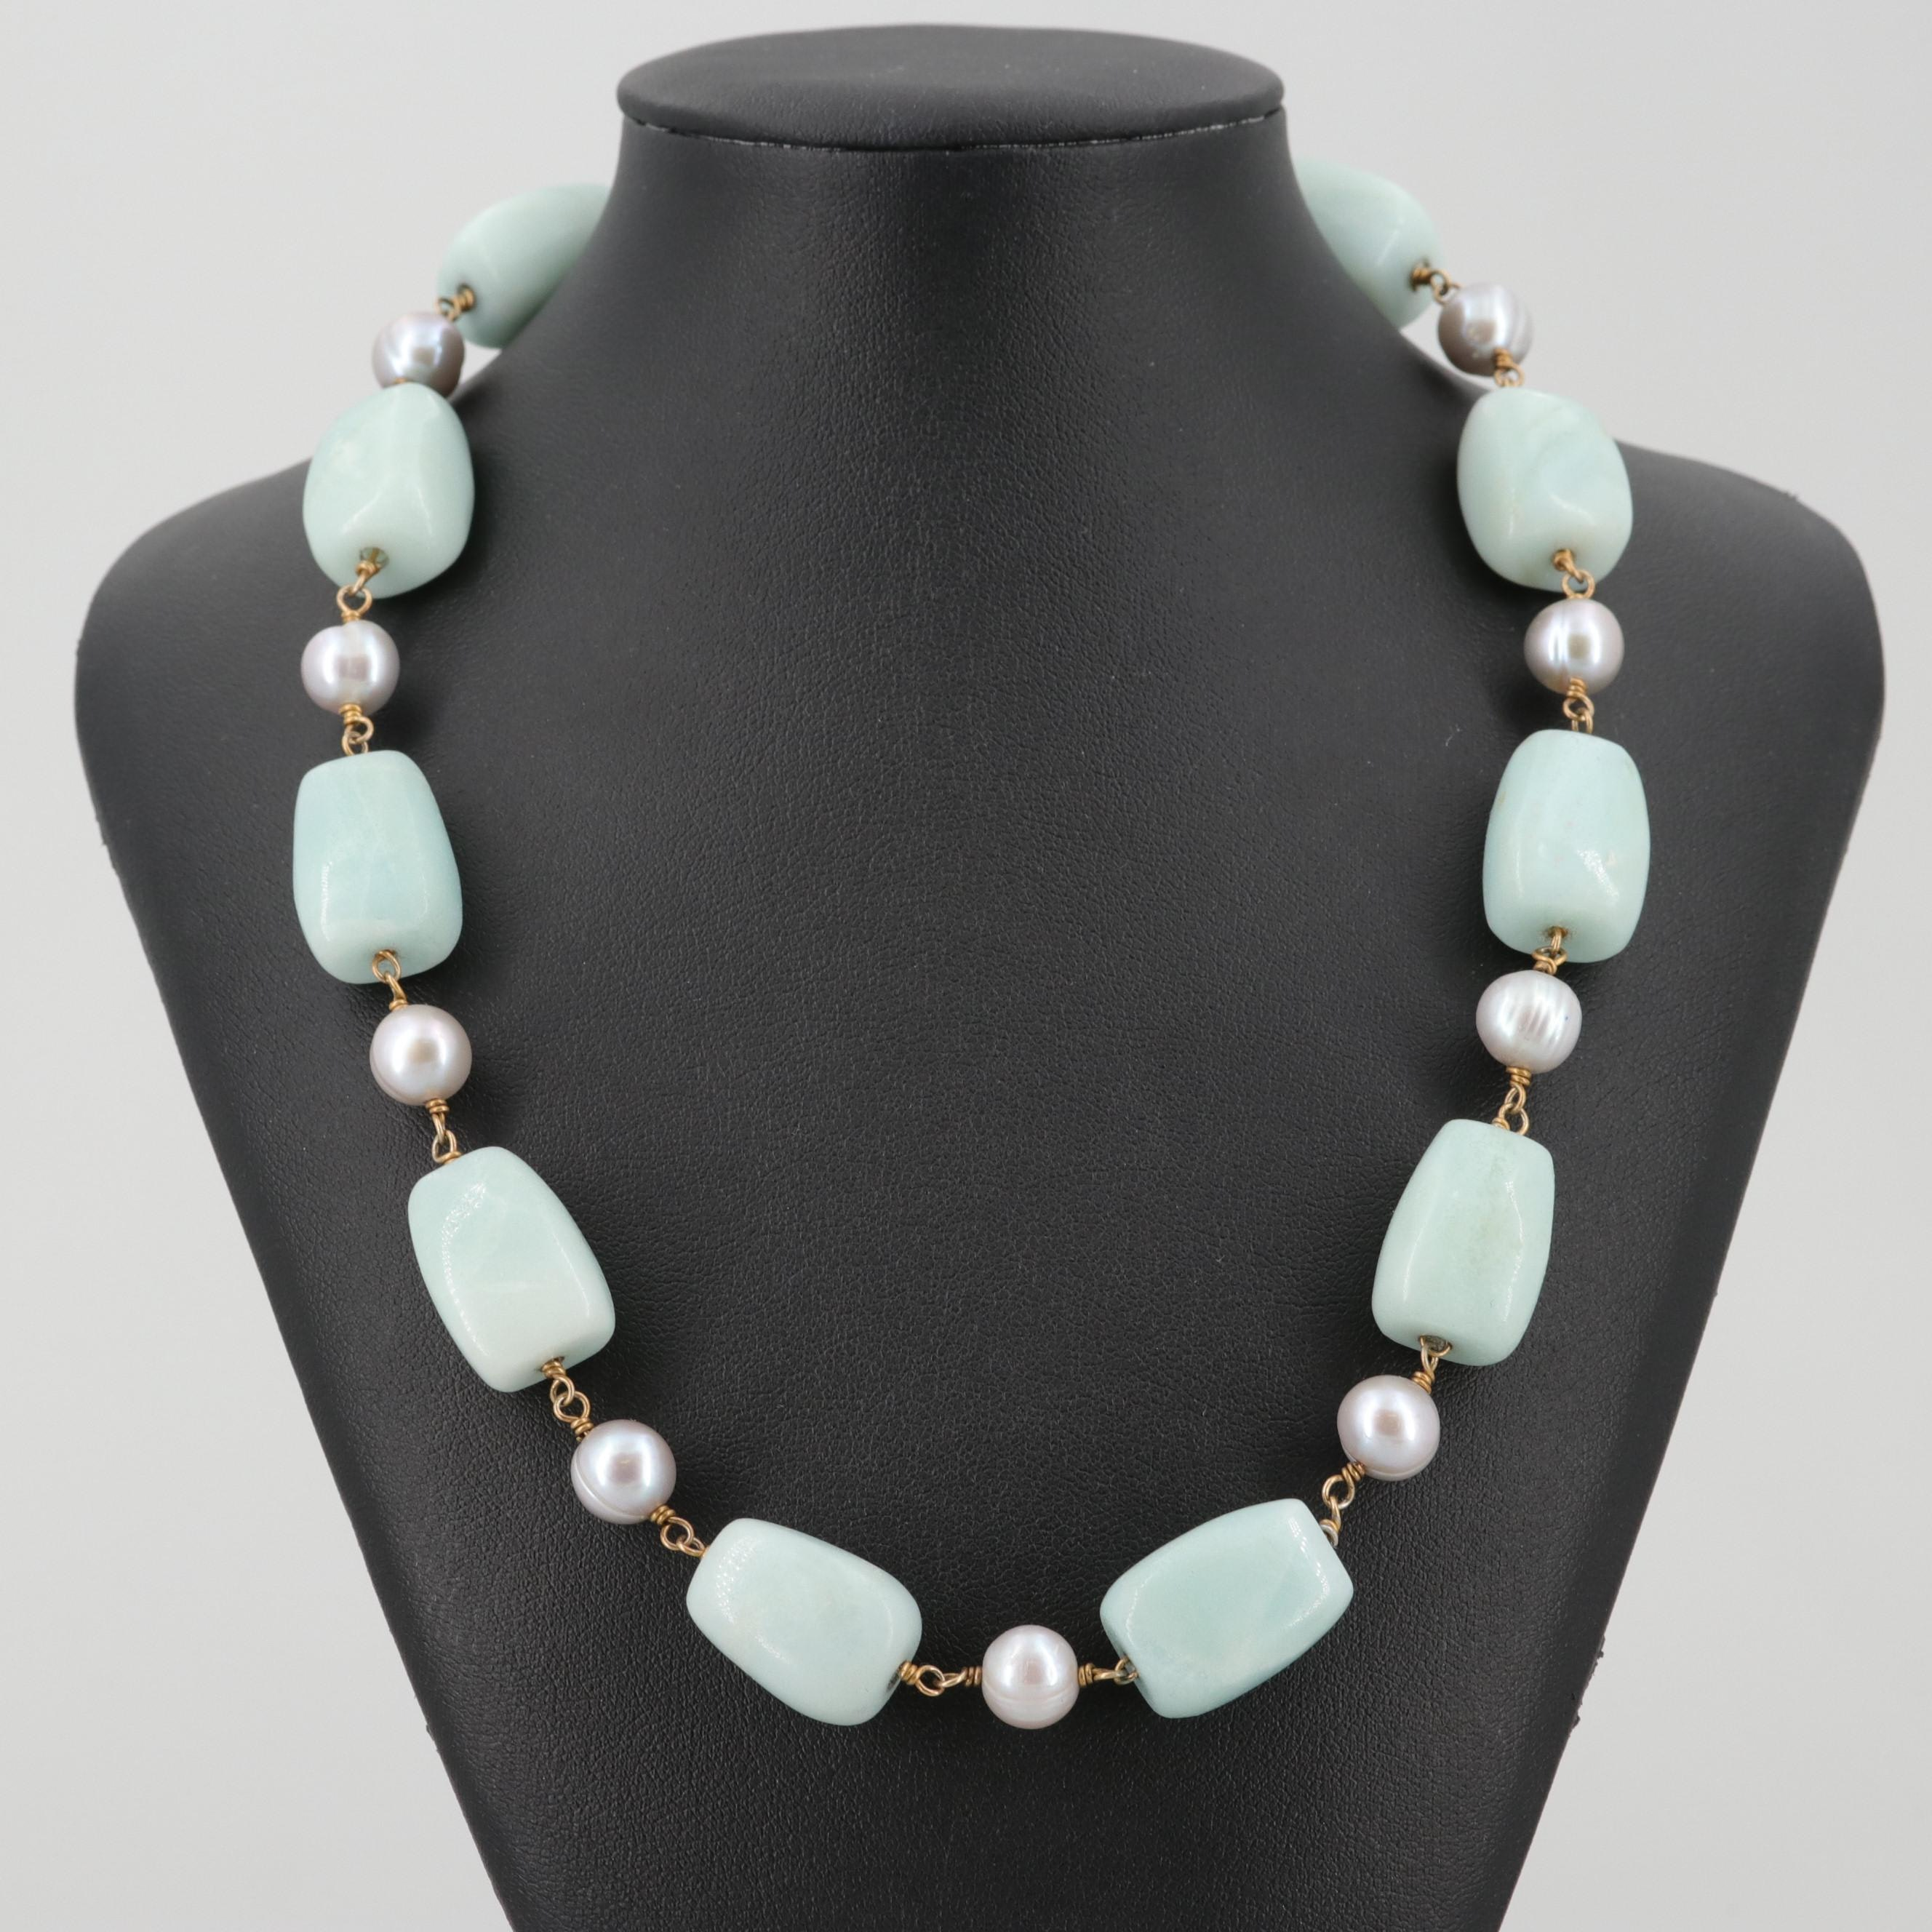 Gold Wash on Sterling Silver Quartz and Cultured Pearl Necklace